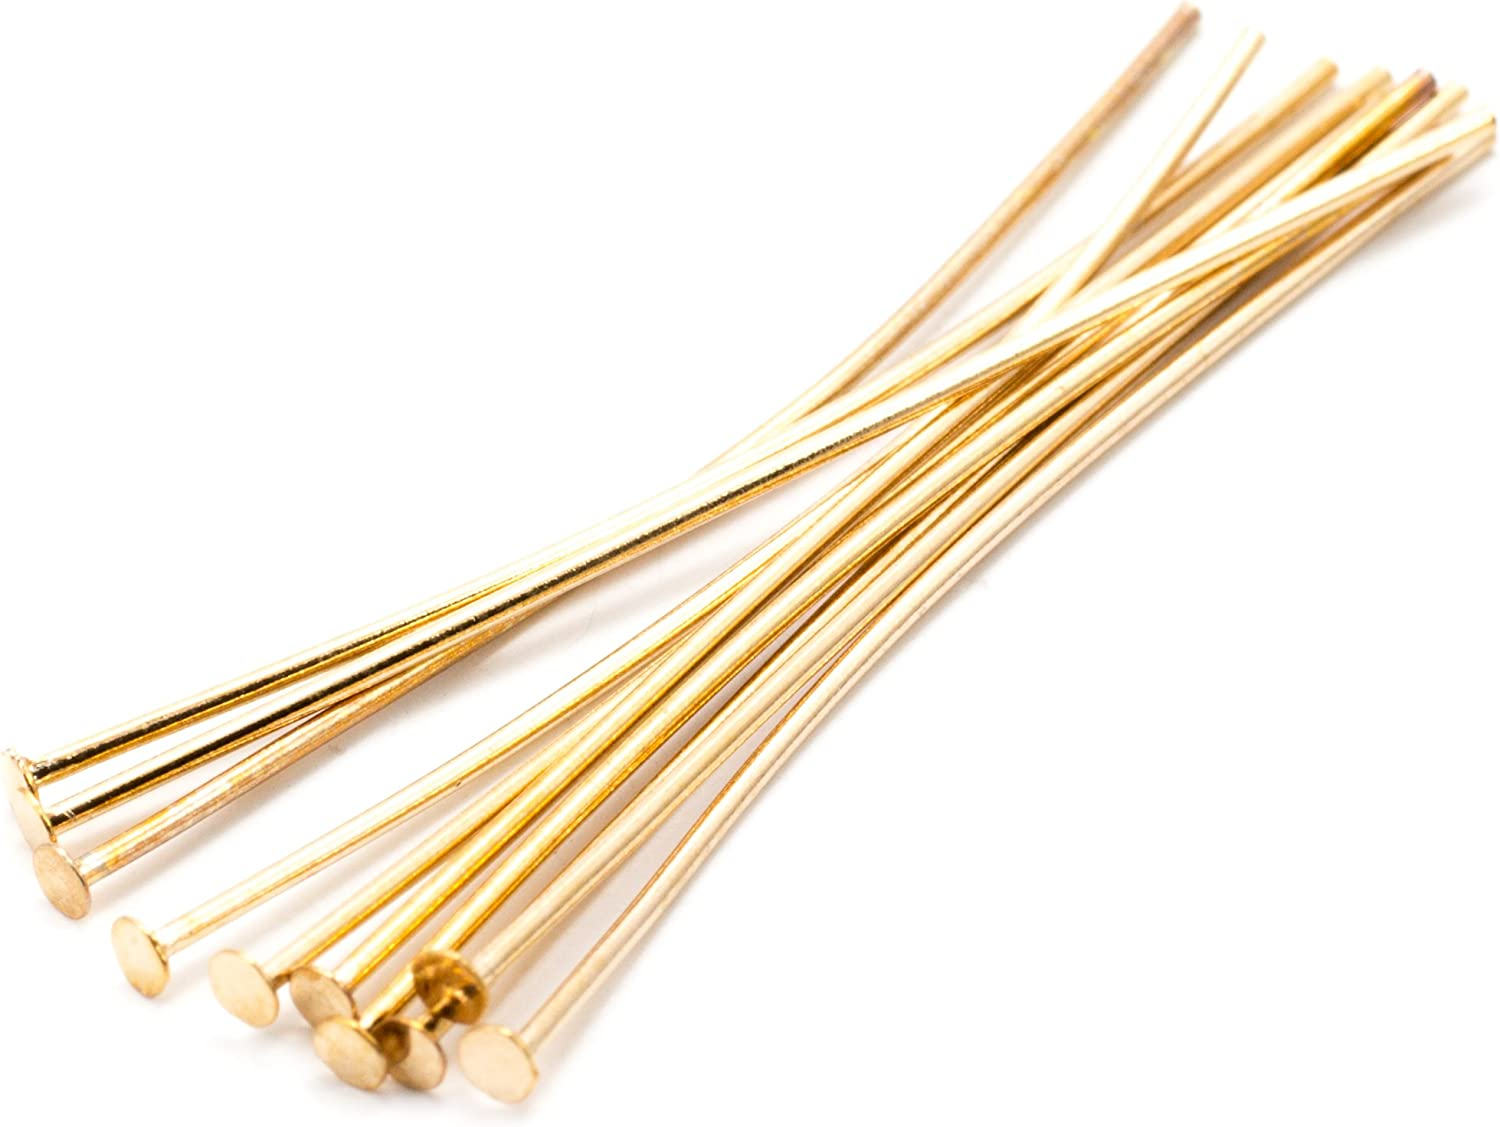 200pcs 0.59inch 200pcs//bag 15 20 25 30 40 50 60 70 mm Flat Head Pins 8 Colors Headpins for Jewelry Findings Making DIY Supplies Gold, 15mm